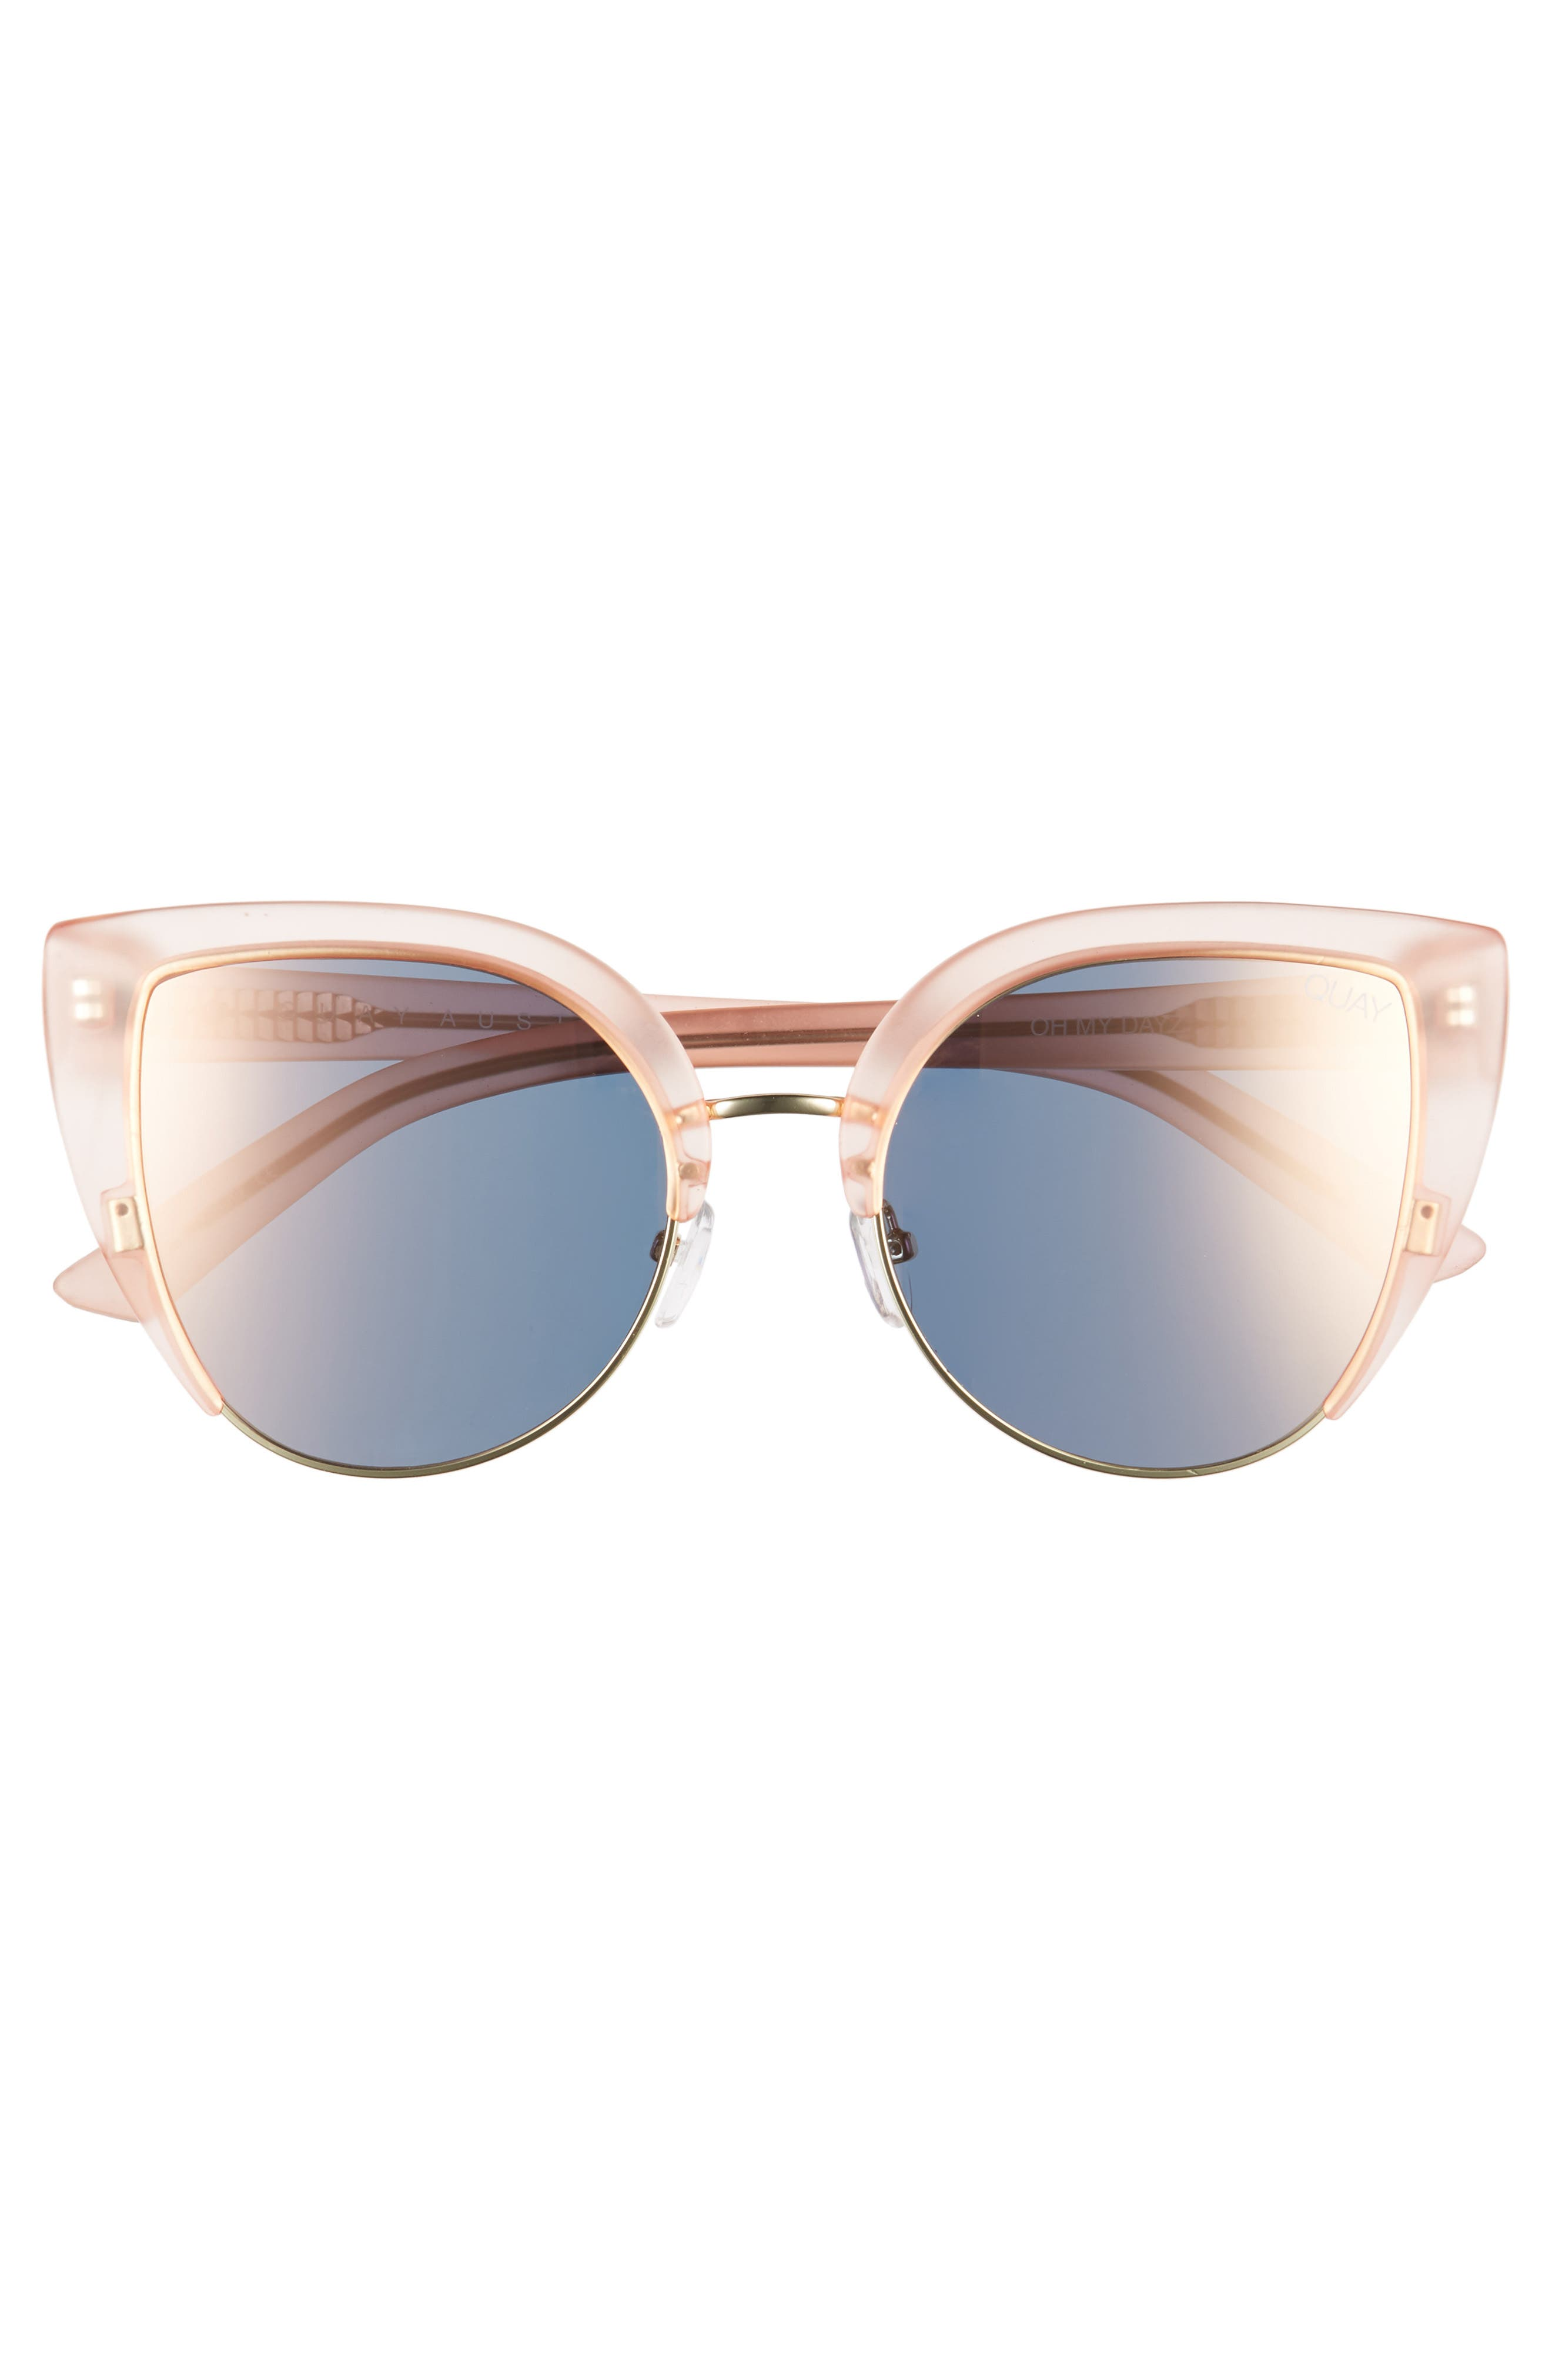 x Missguided Oh My Dayz 53mm Sunglasses,                             Alternate thumbnail 4, color,                             Pink/ Gold